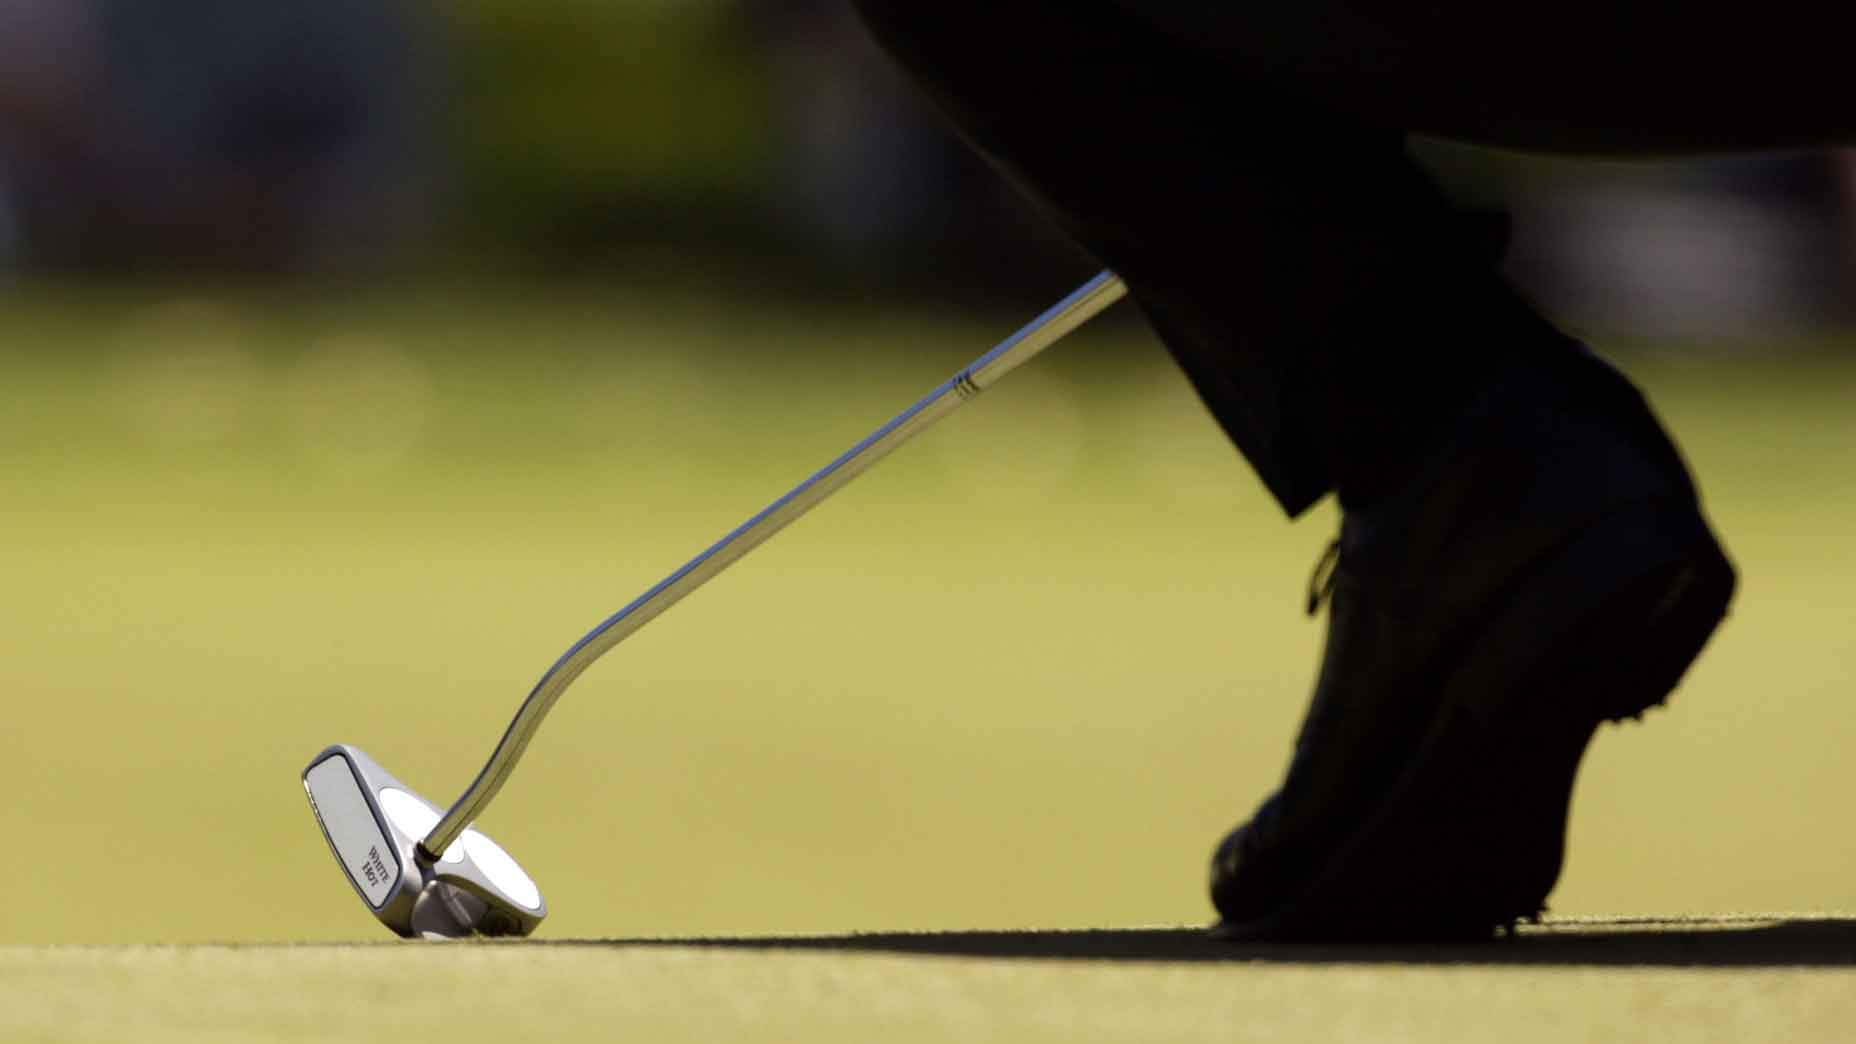 A player uses an Odyssey Two Ball putter